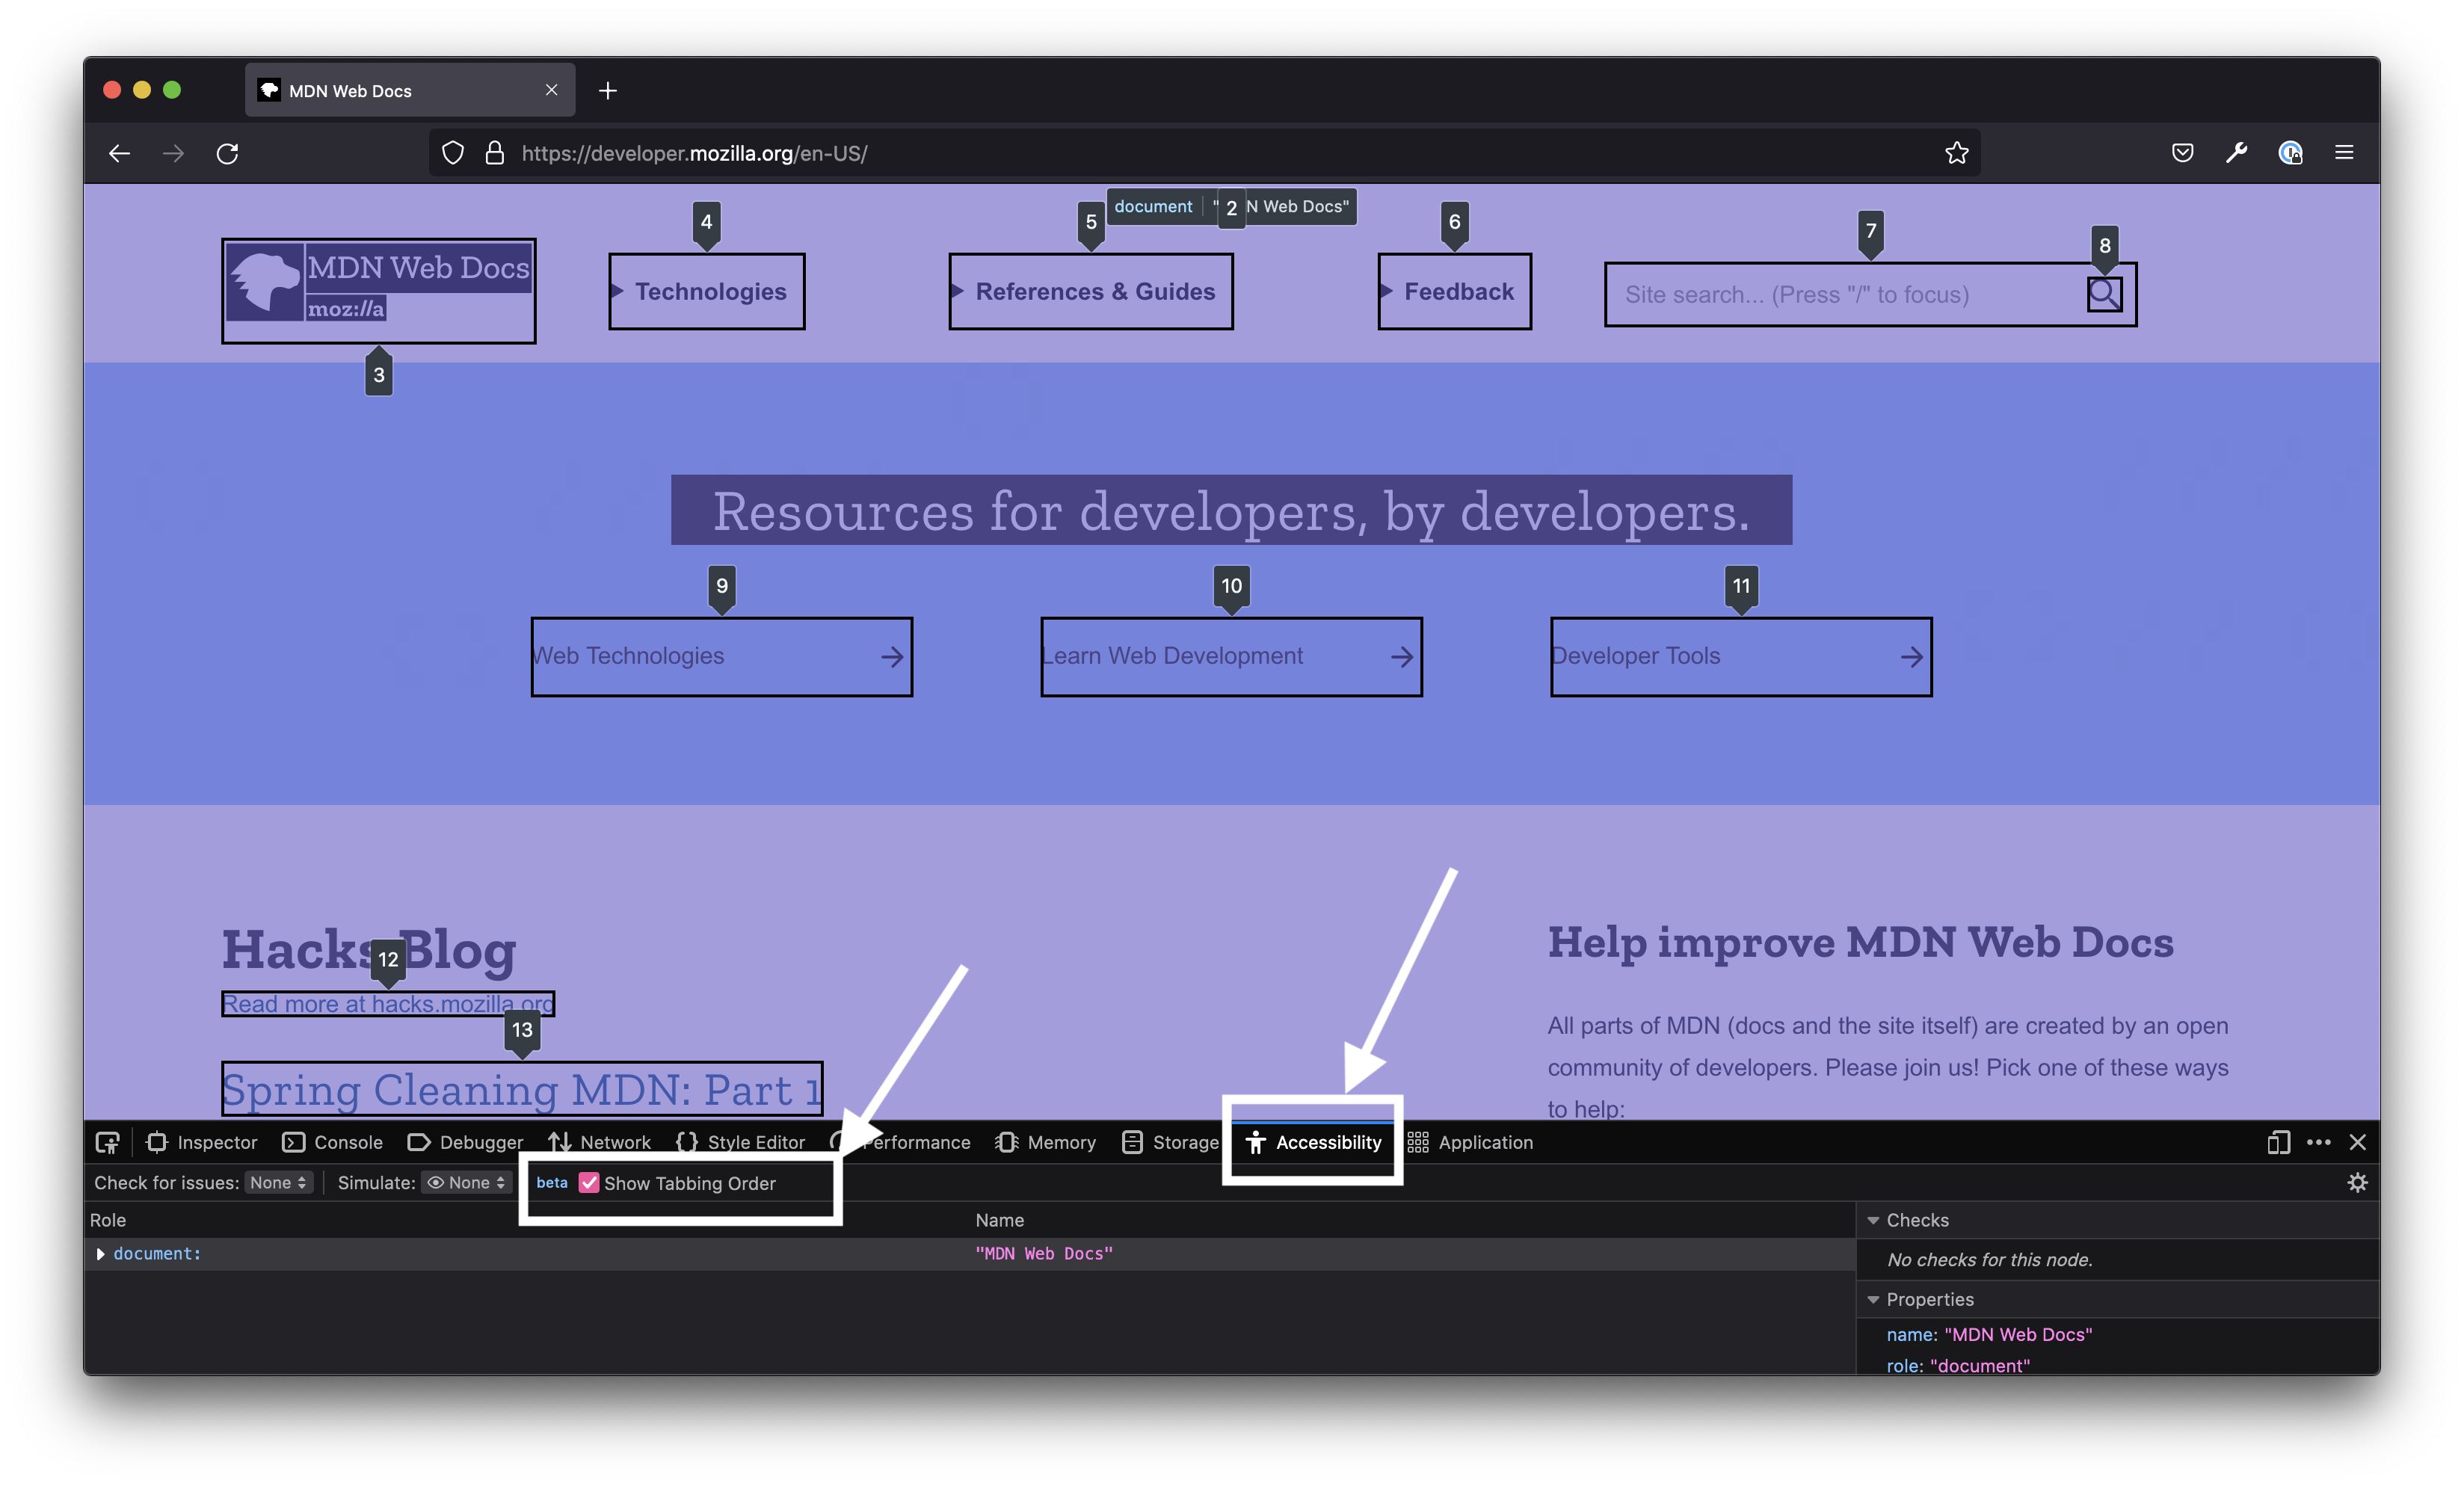 The MDN homepage open in Firefox browser with the devtools open to the Accessibility tab. In the Accessibility tab, a checkbox that says 'Show Tabbing Order' is checked. And an overlay covers the page and shows the various Tab stops numbered.